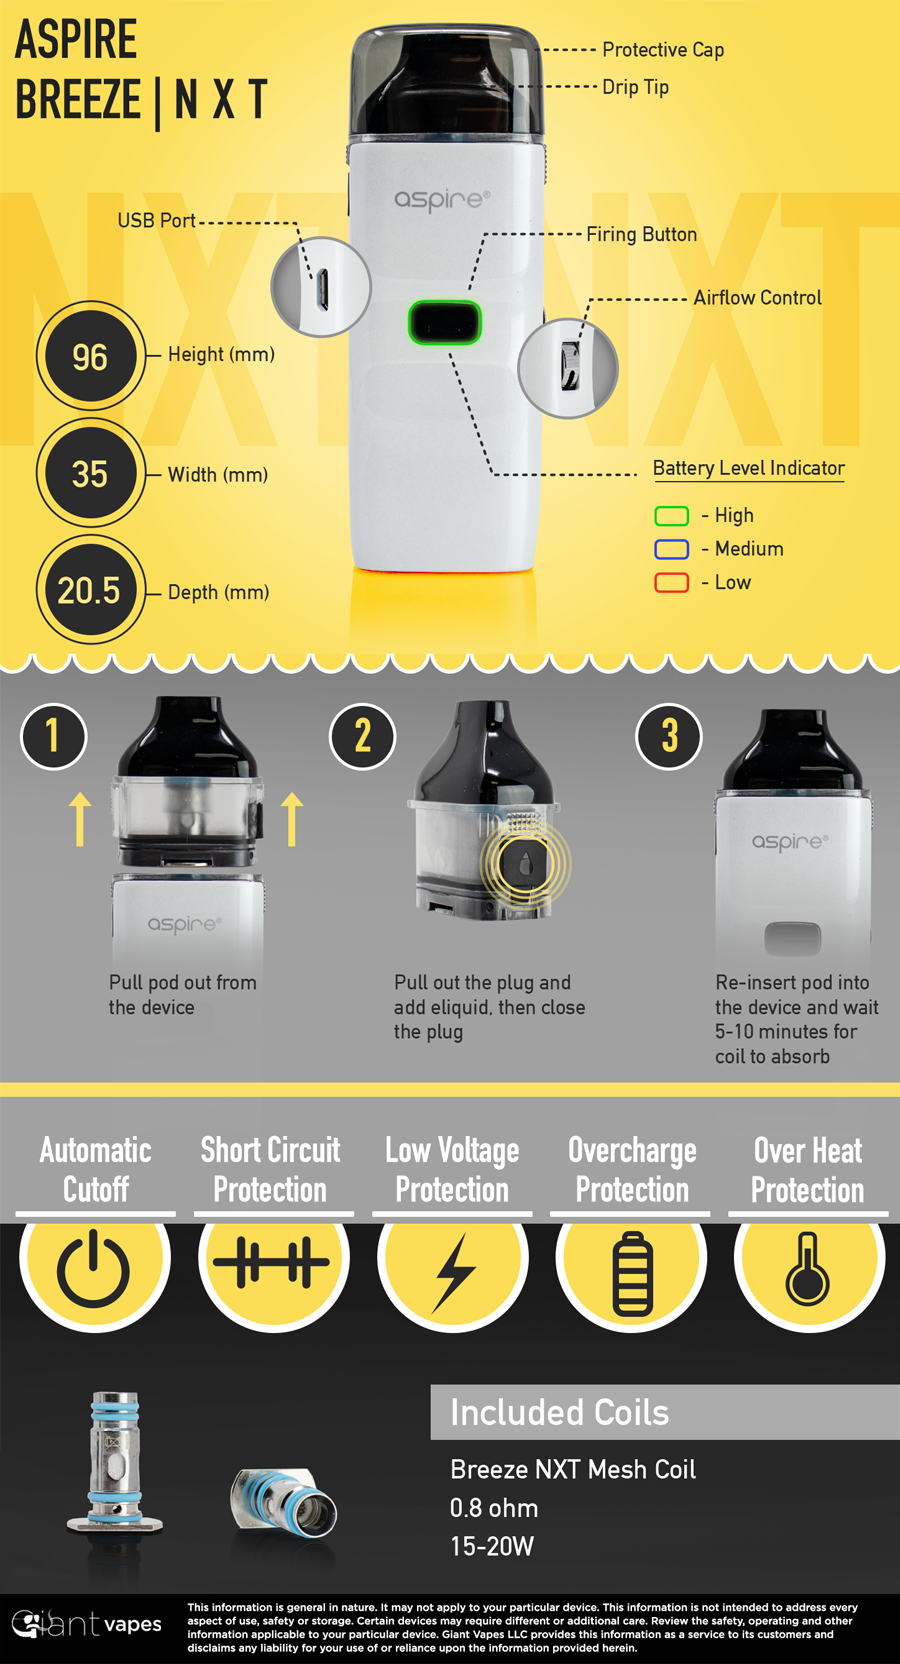 Aspire Breeze NXT Kit Infographic